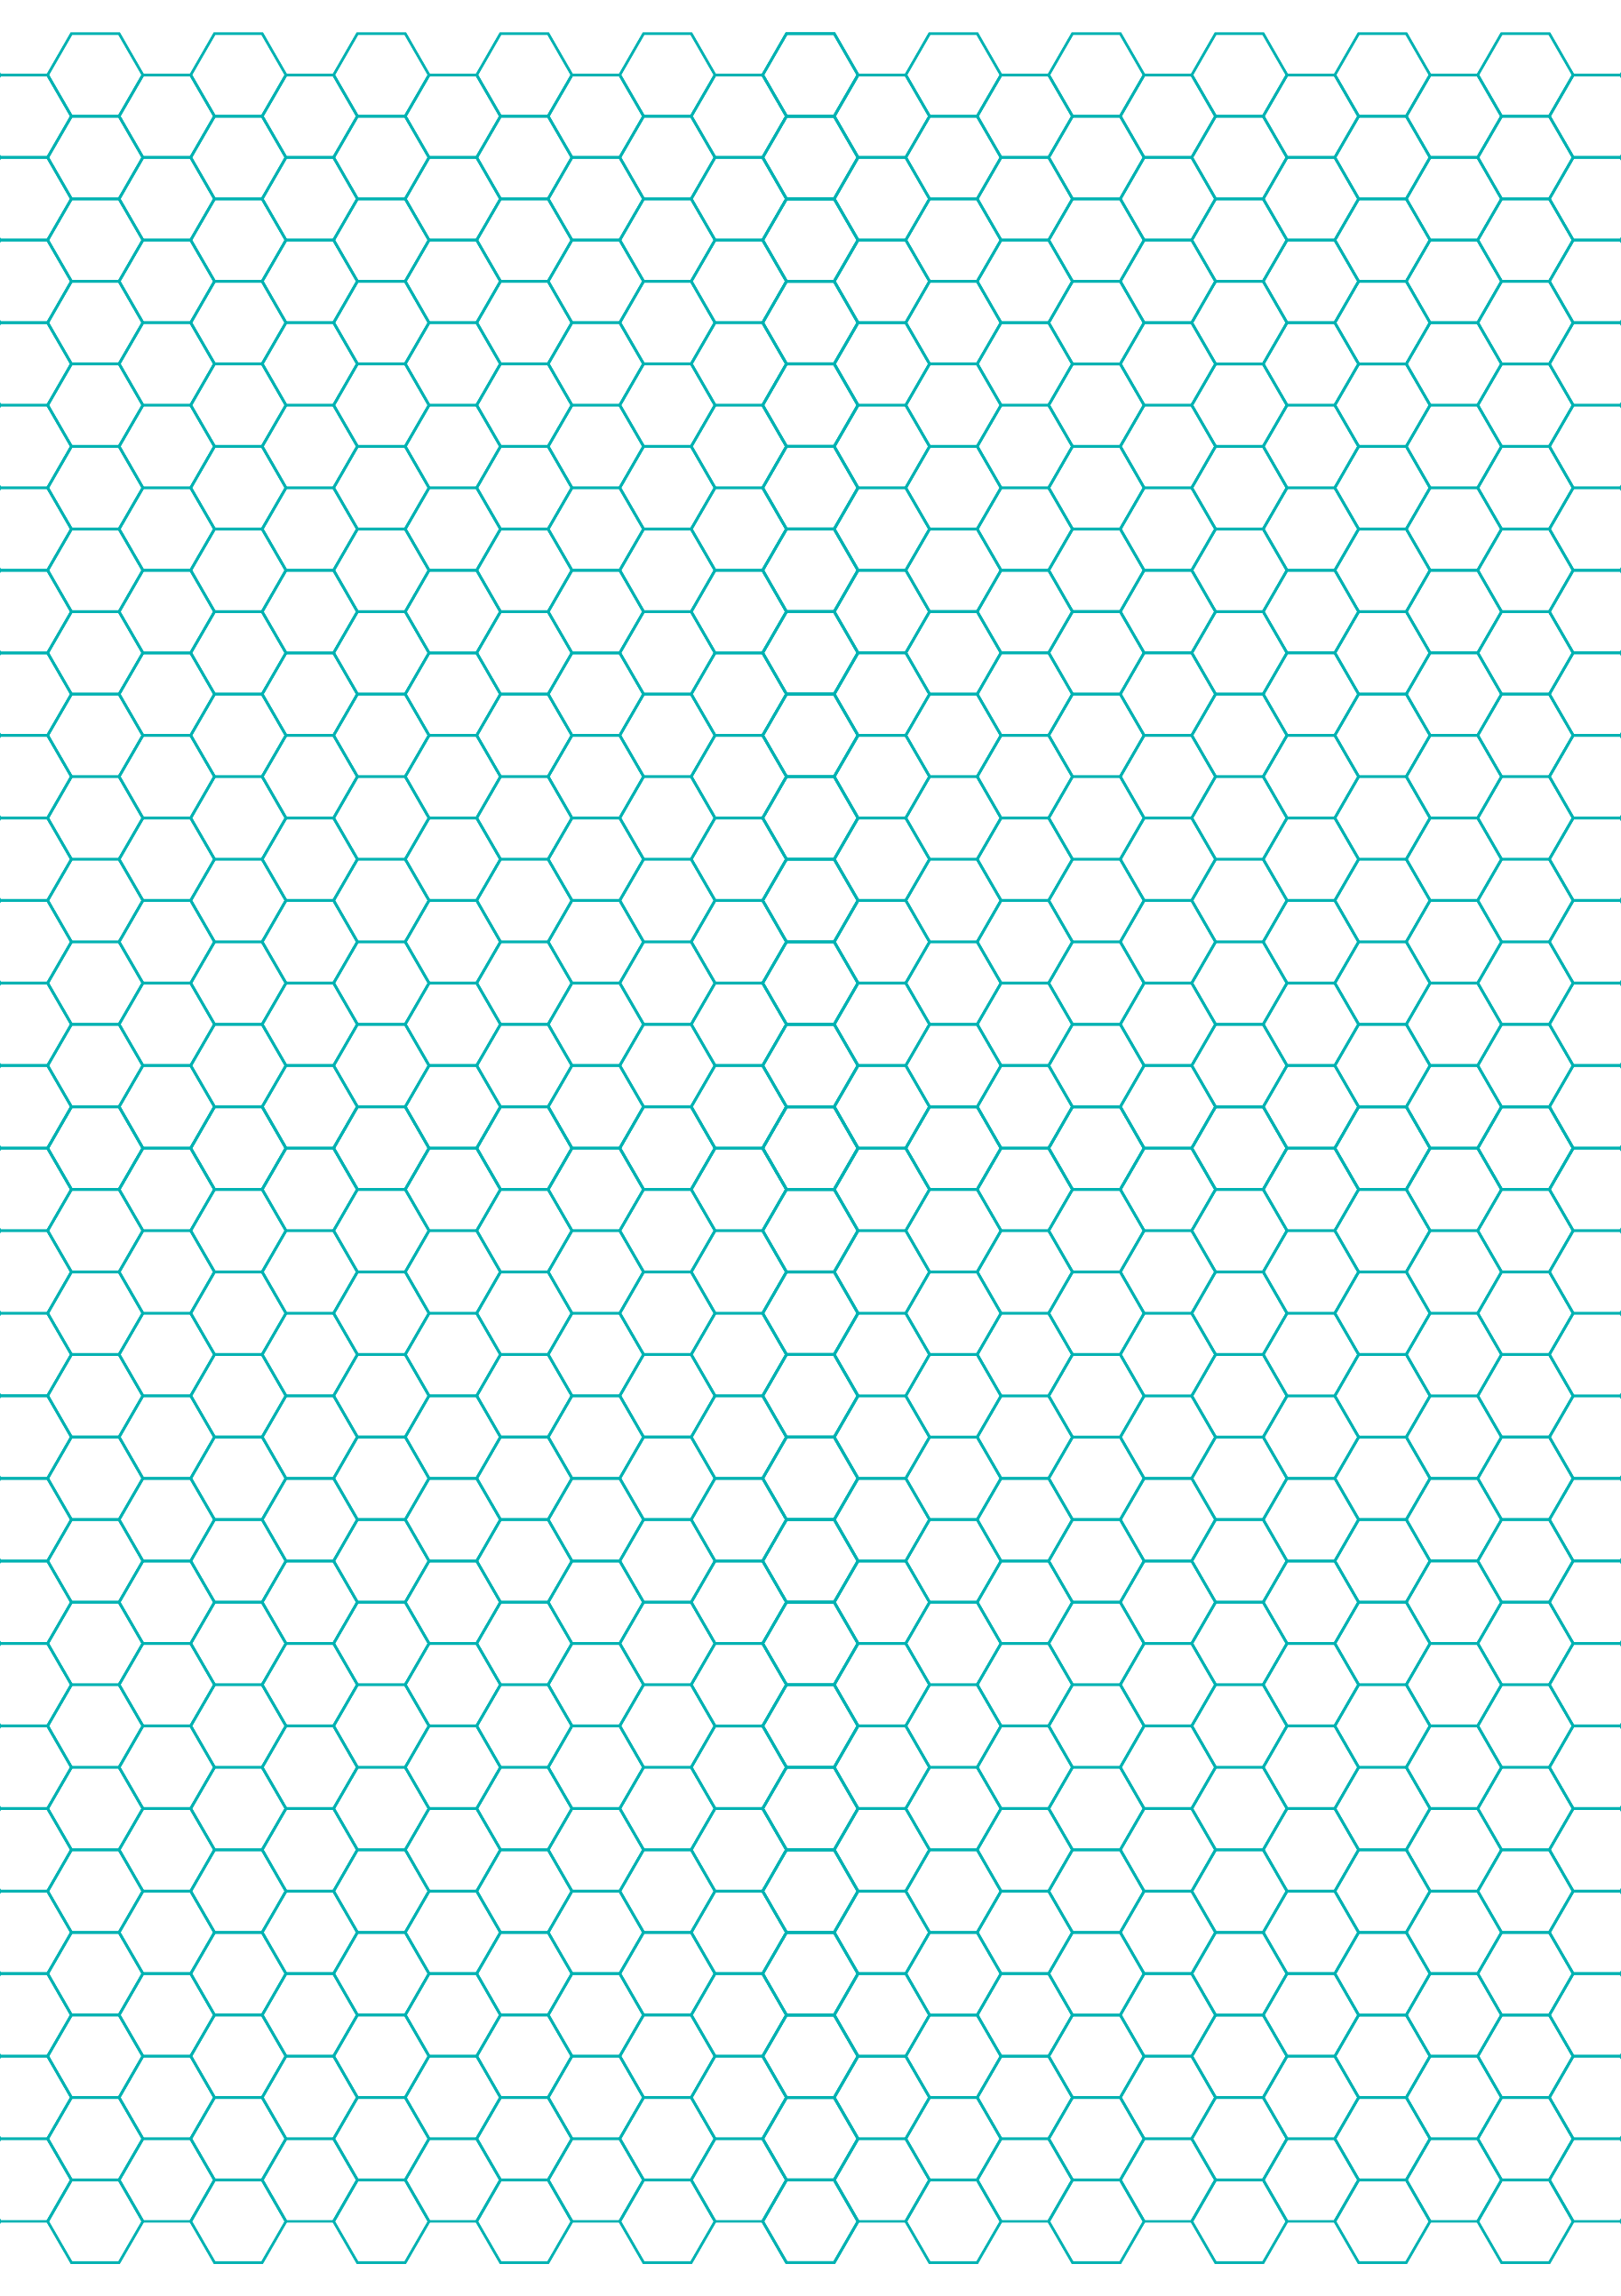 Hexagon Graph Paper with 1/4-Inch Spacing on Letter-Sized Paper Free ...